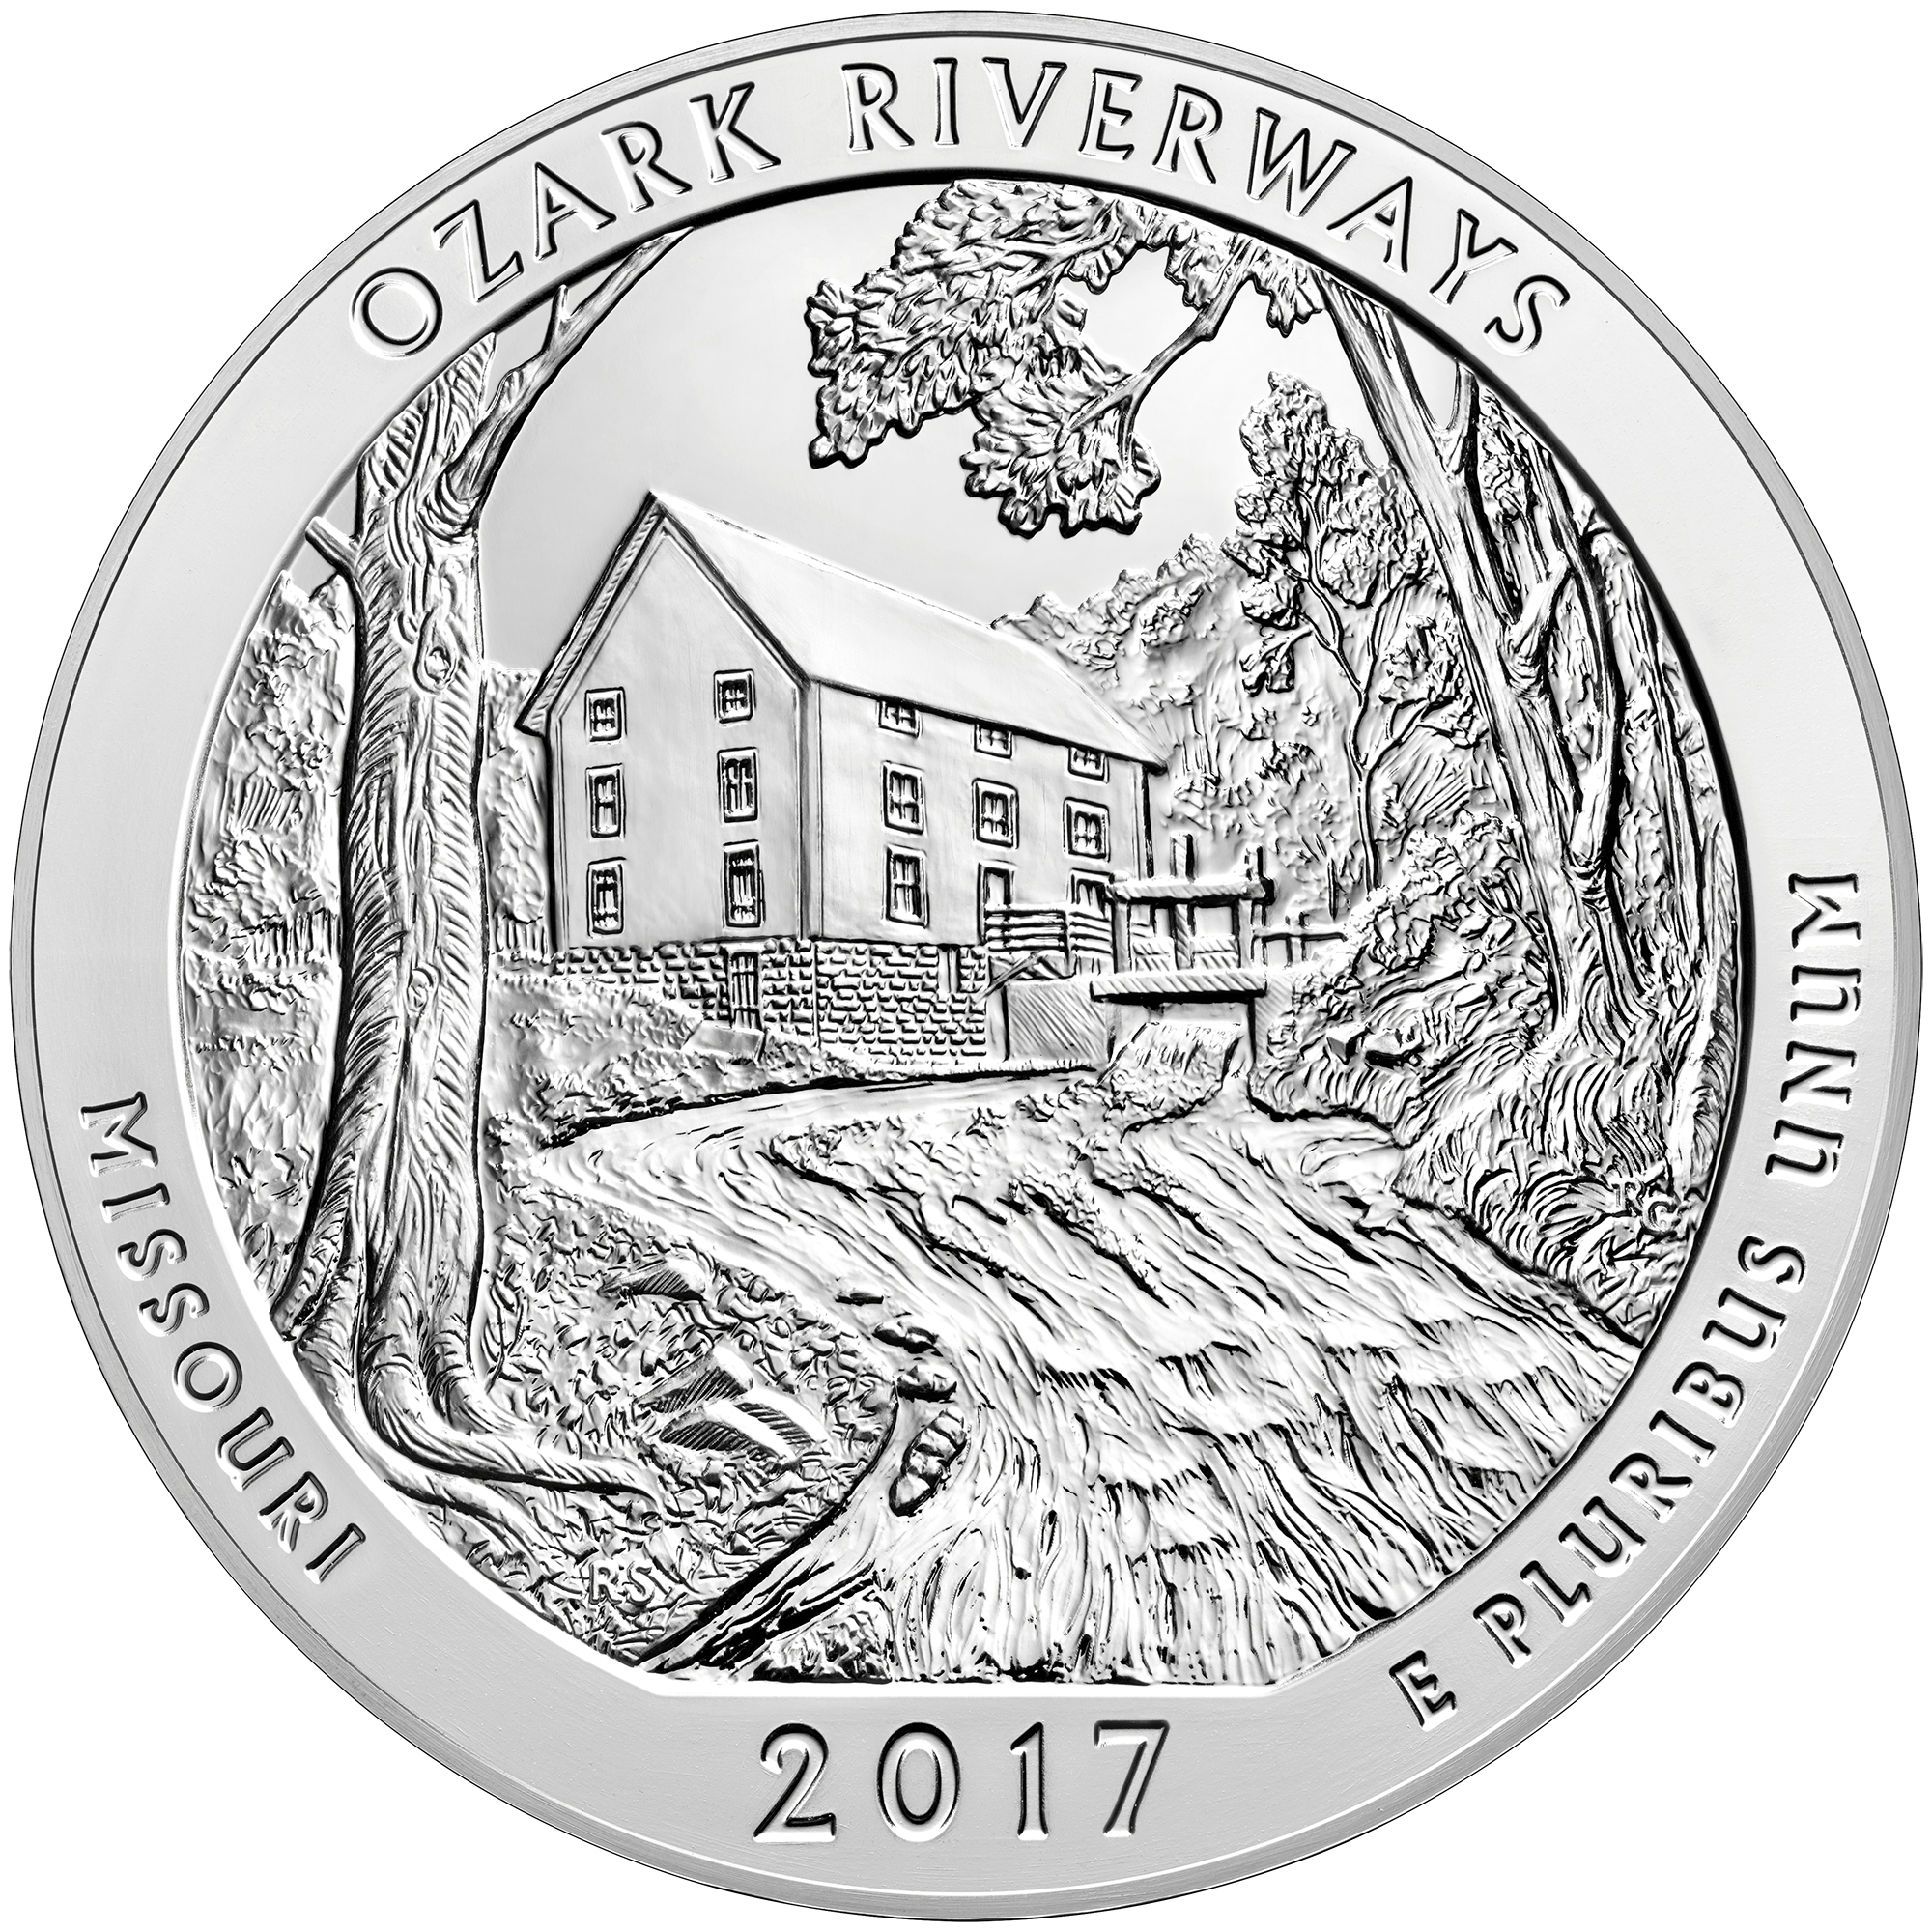 2017 America the Beautiful Quarters Five Ounce Silver Bullion Coin Ozark Riverways Missouri Reverse